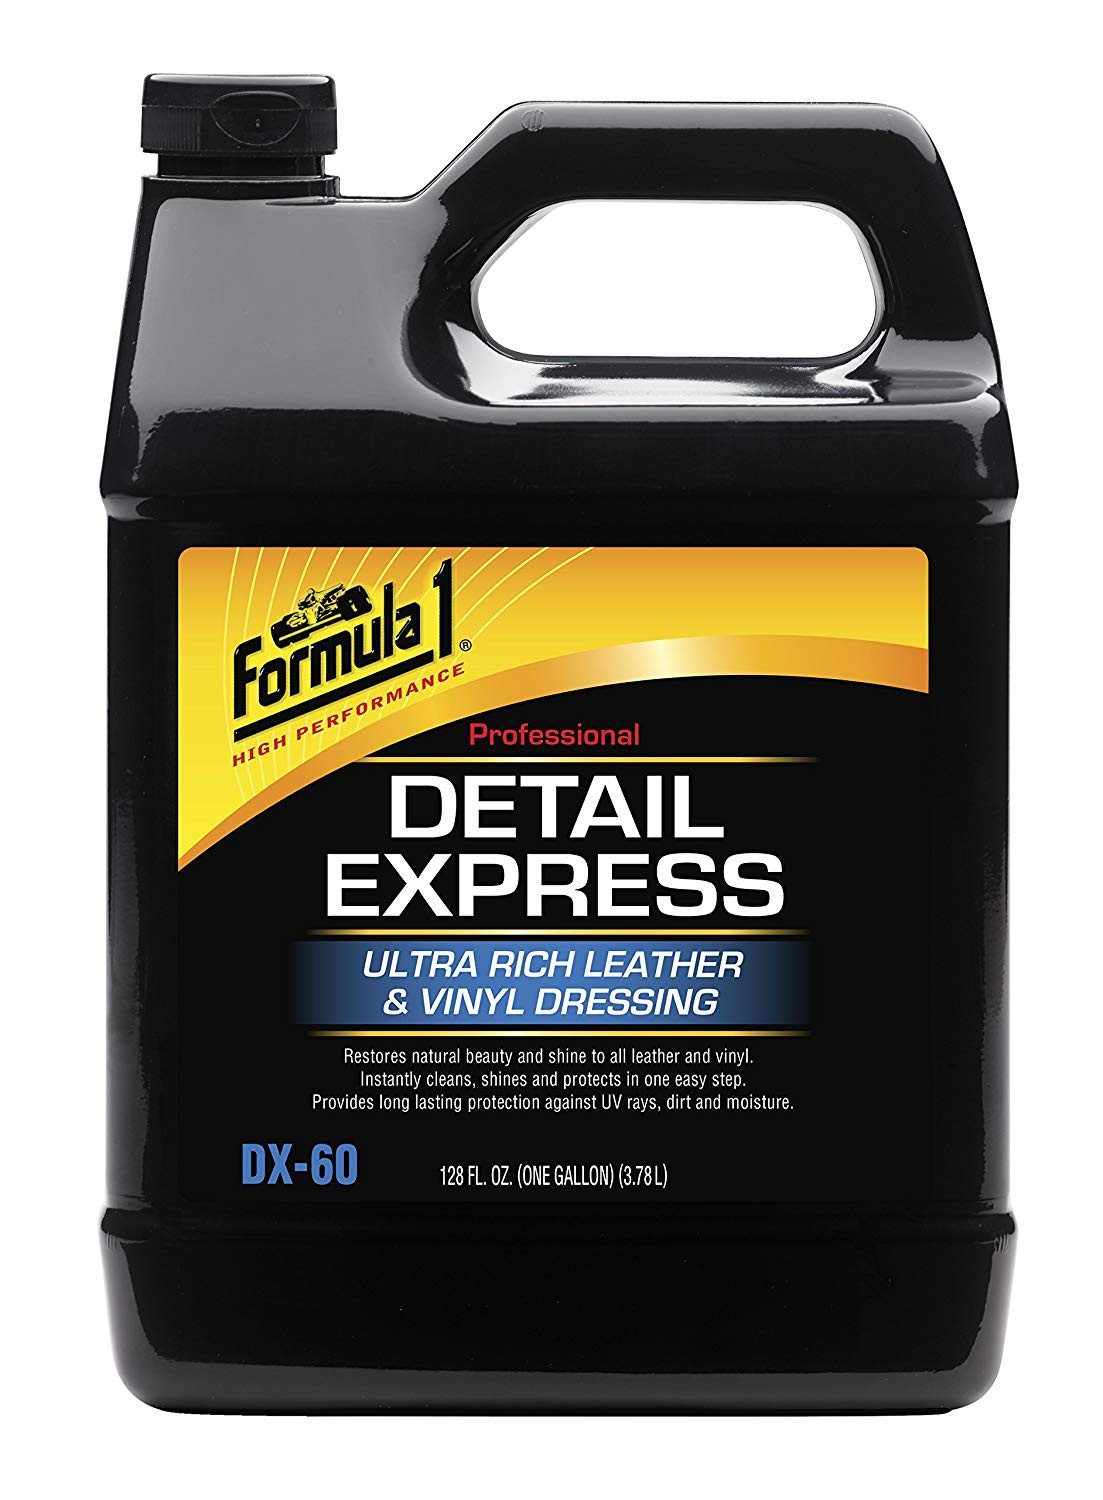 formula-1-c-detail-express-dx-60-ultra-rich-leather-and-vinyl-dressing-378-l